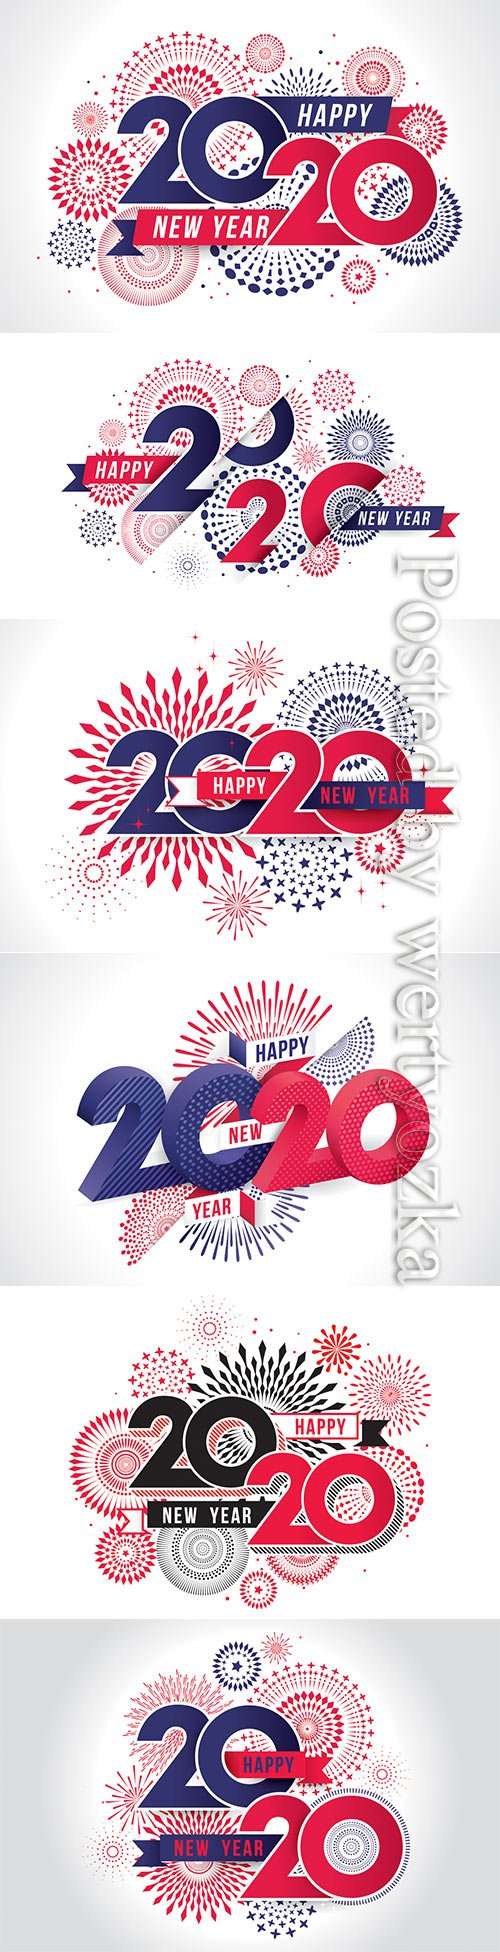 Happy new year 2020 vector illustration of fireworks